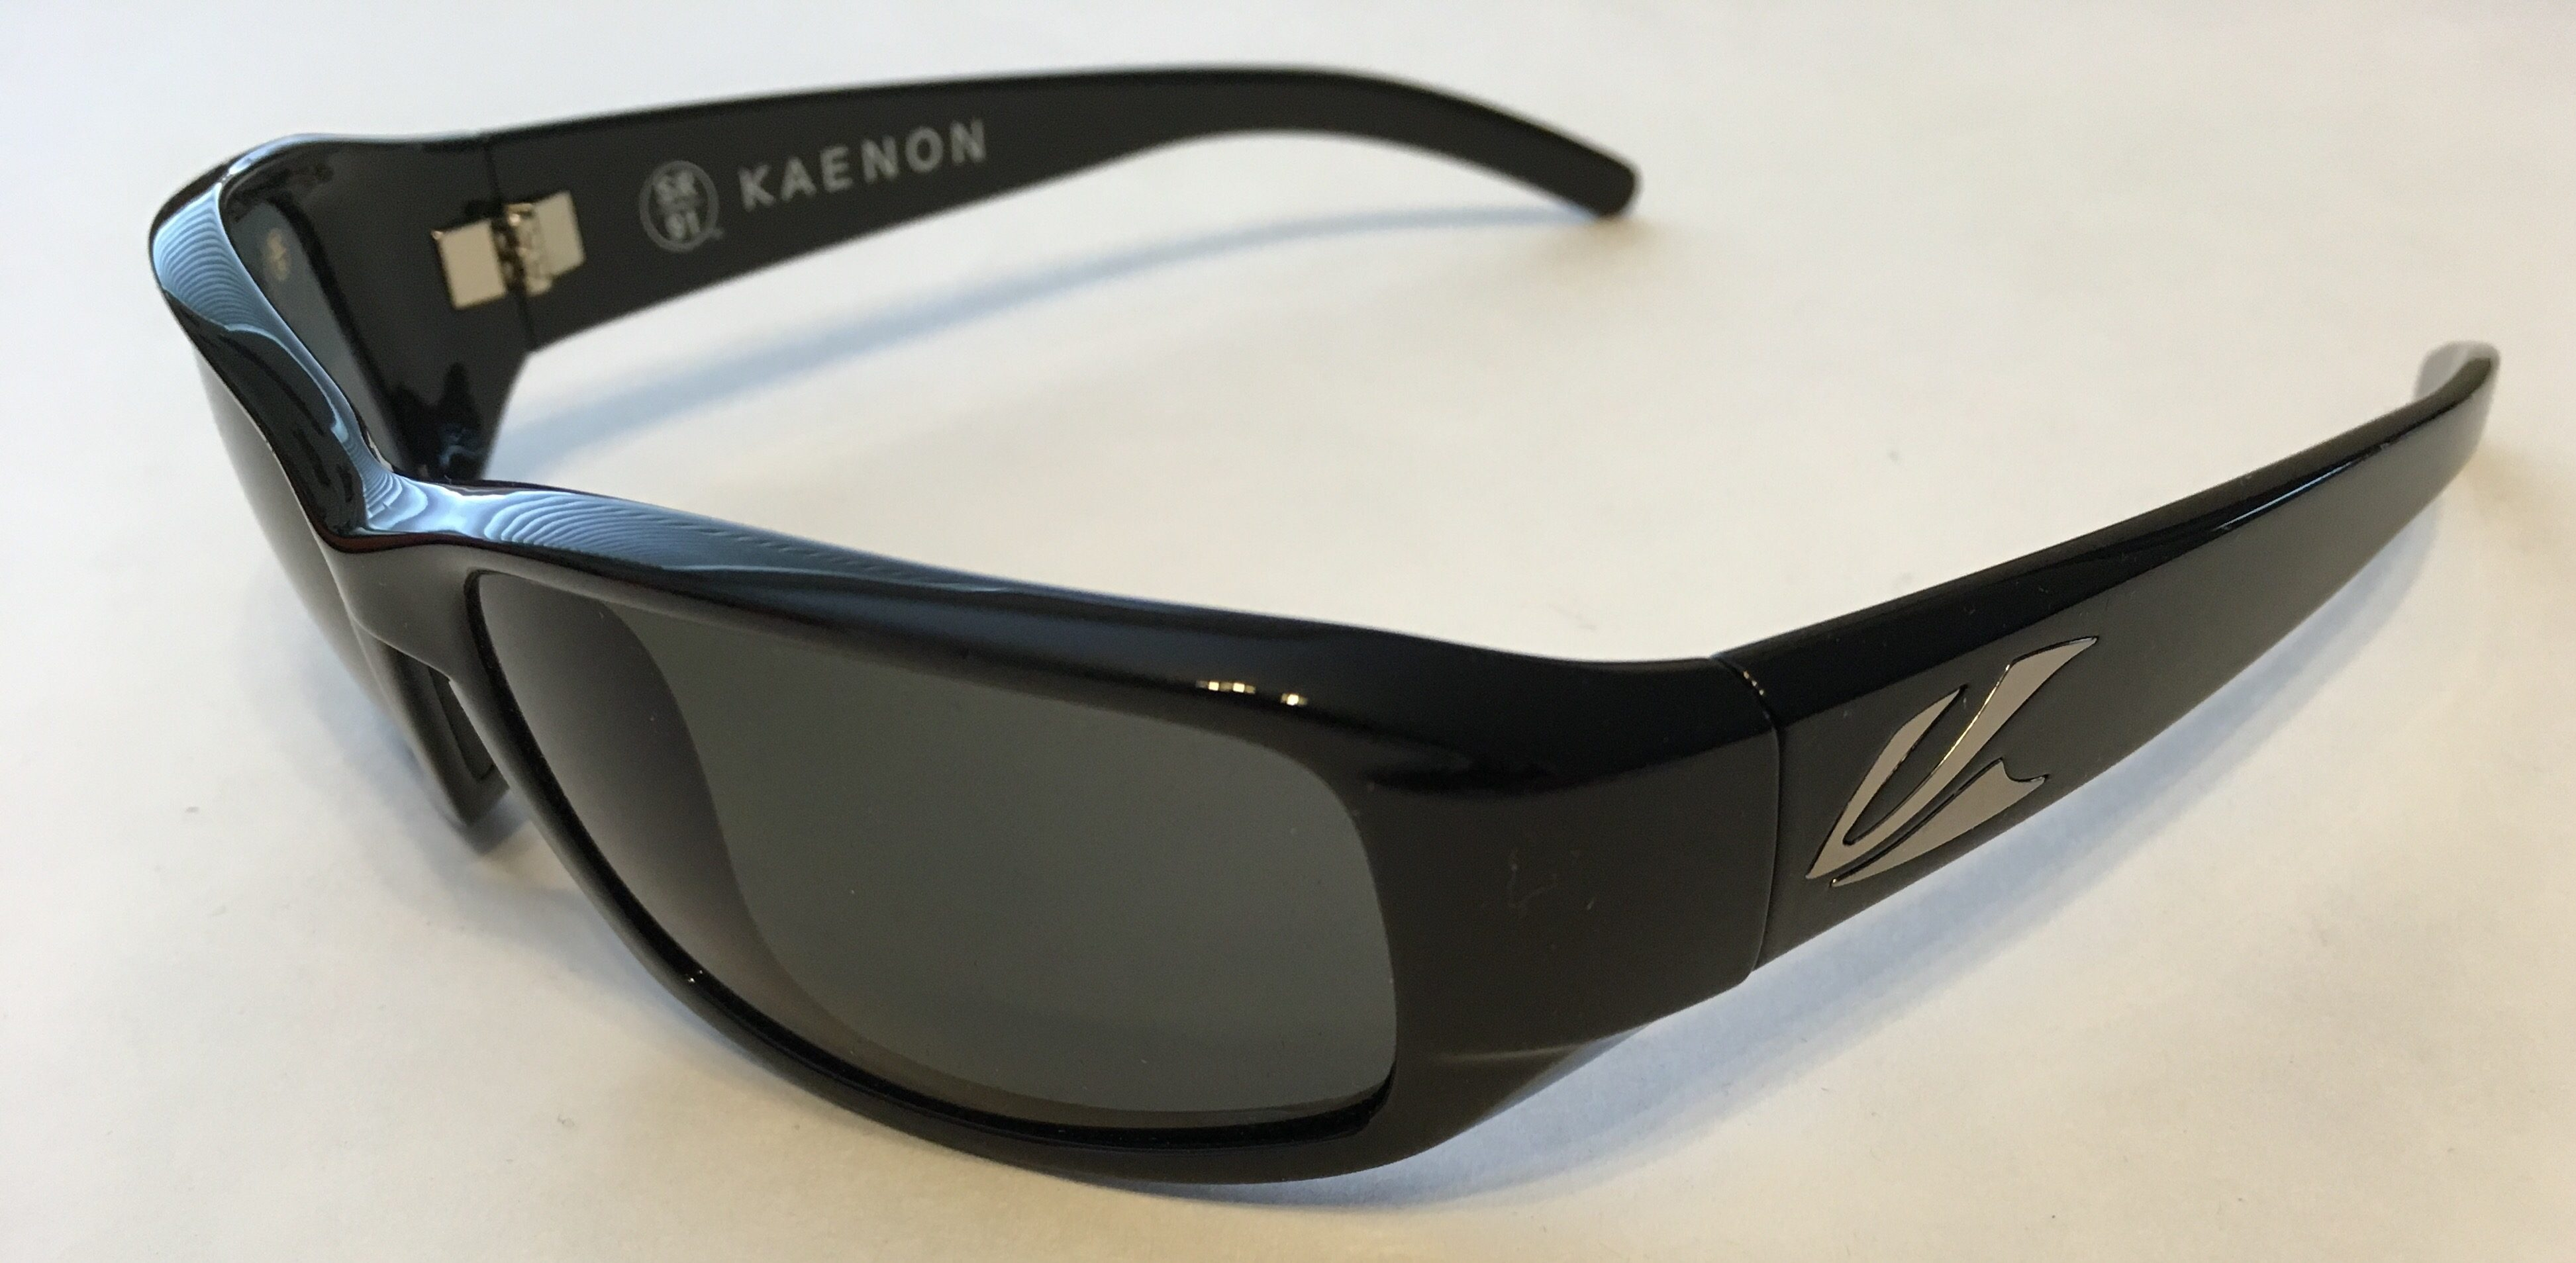 7f52c050d1 Kaenon Beacon Sunglasses - Black Frame - SR-91 Polarized G12 Gray Lenses